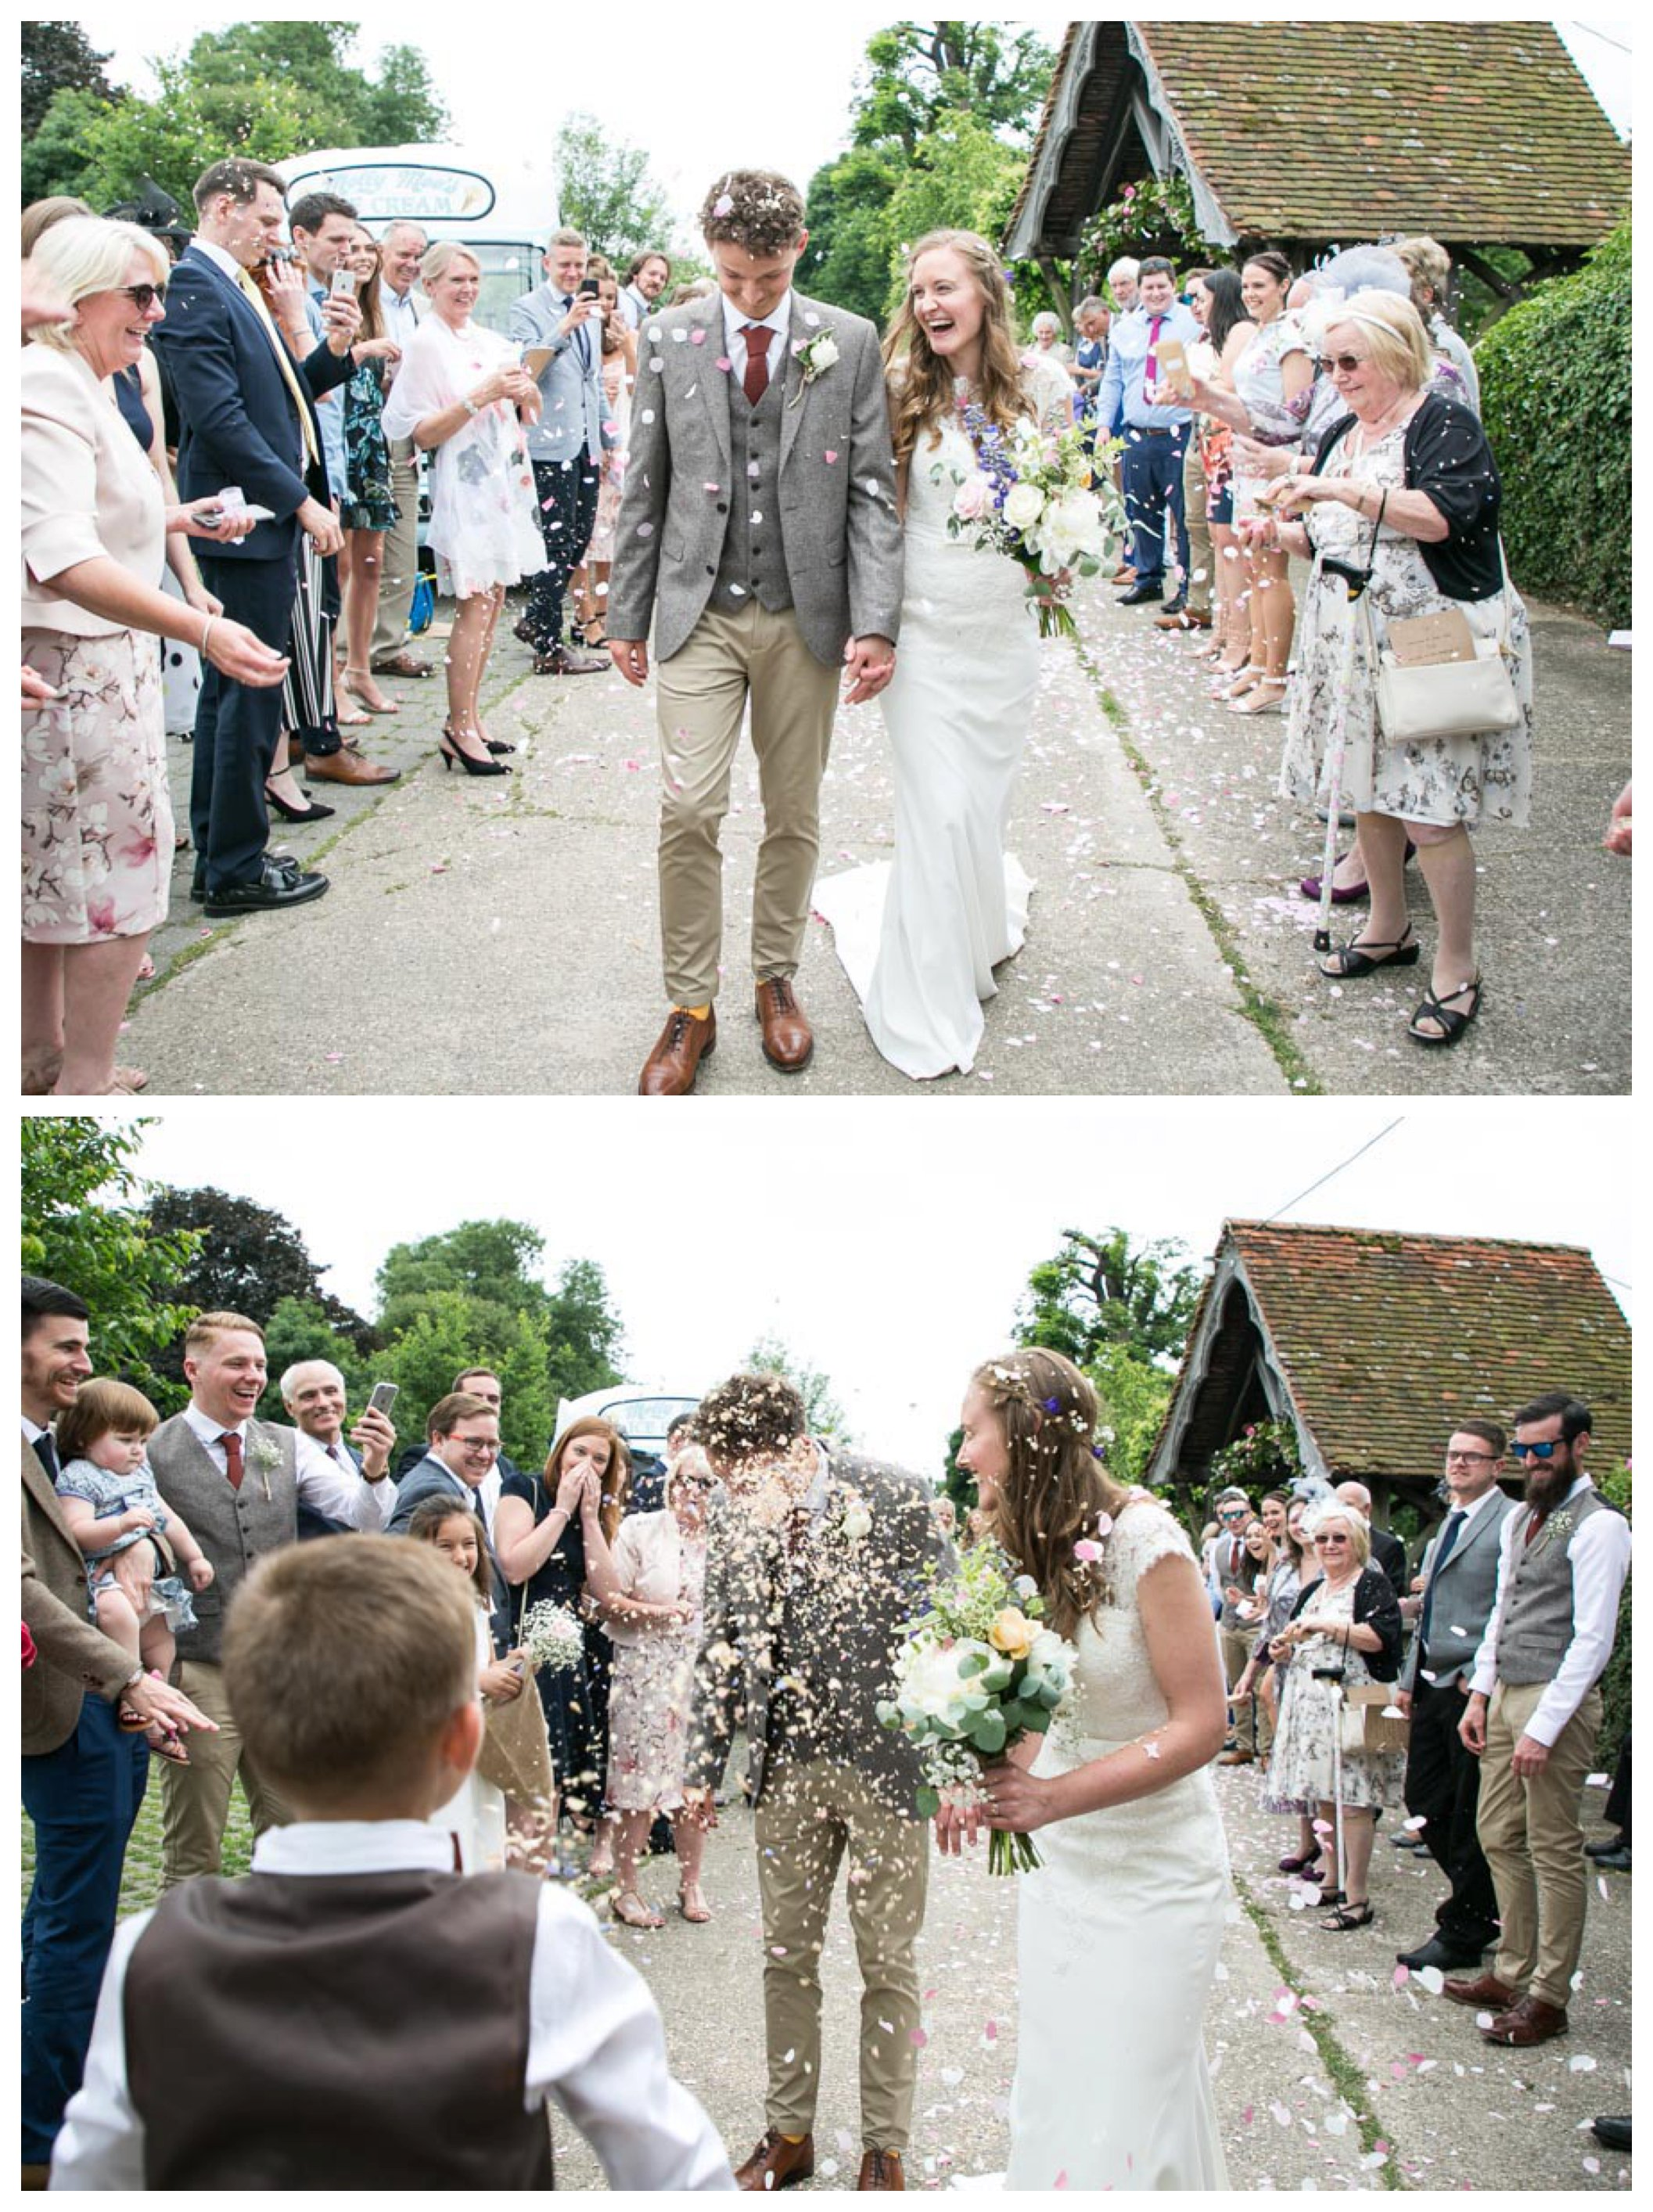 bride and groom having confettii thrown over them outside church at their wedding